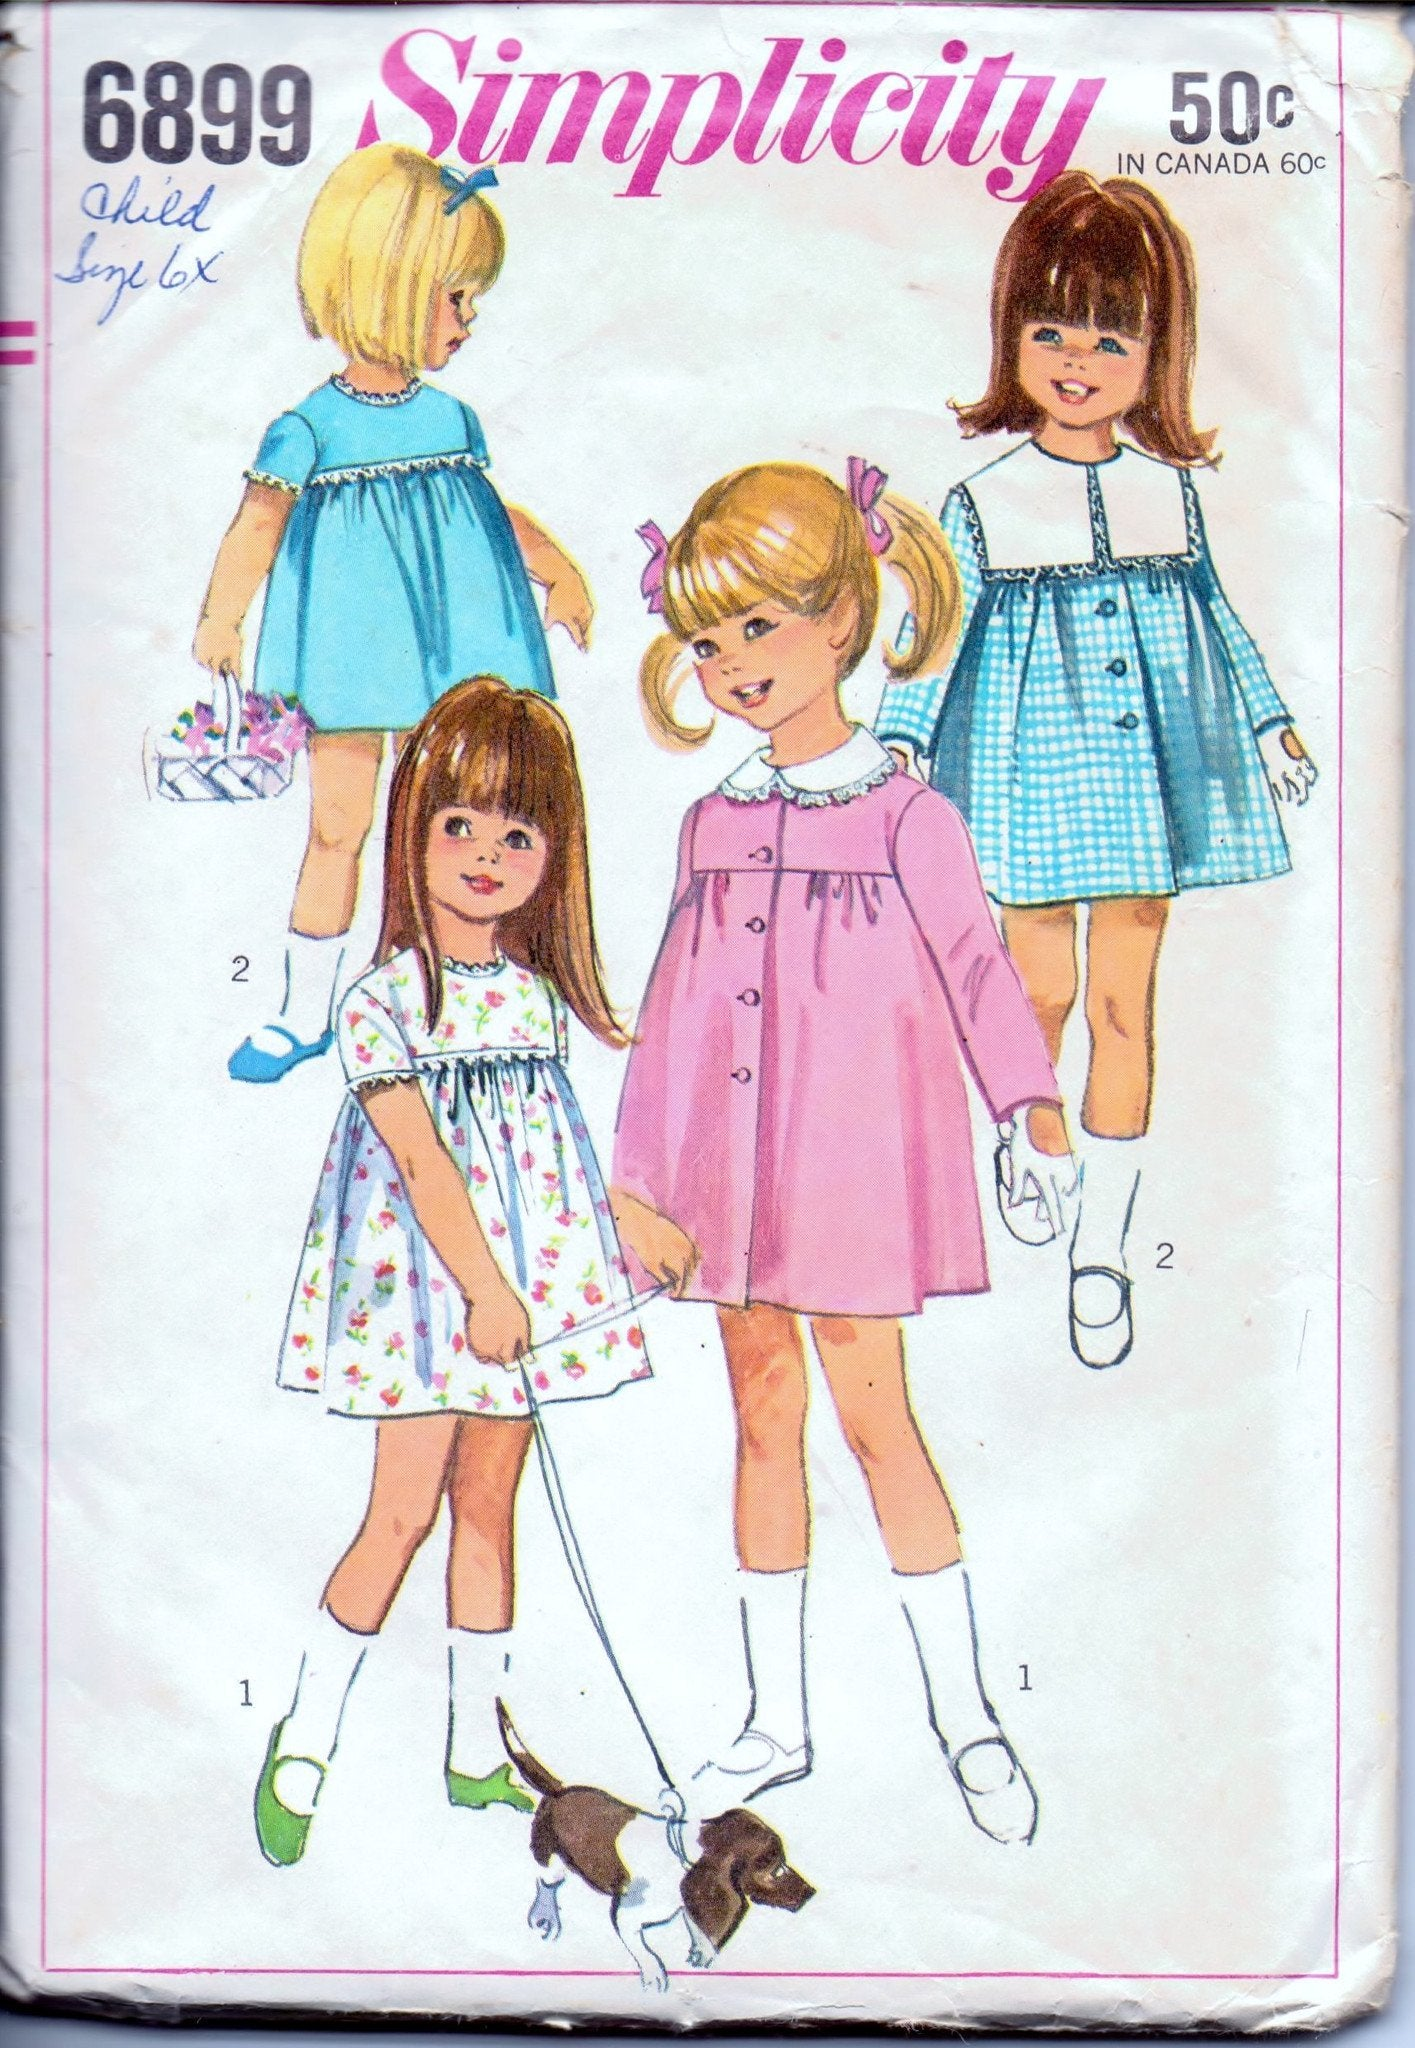 Simplicity 6899 Little Girls' One Piece Dress and Coat Vintage 1960's Sewing Pattern - VintageStitching - Vintage Sewing Patterns